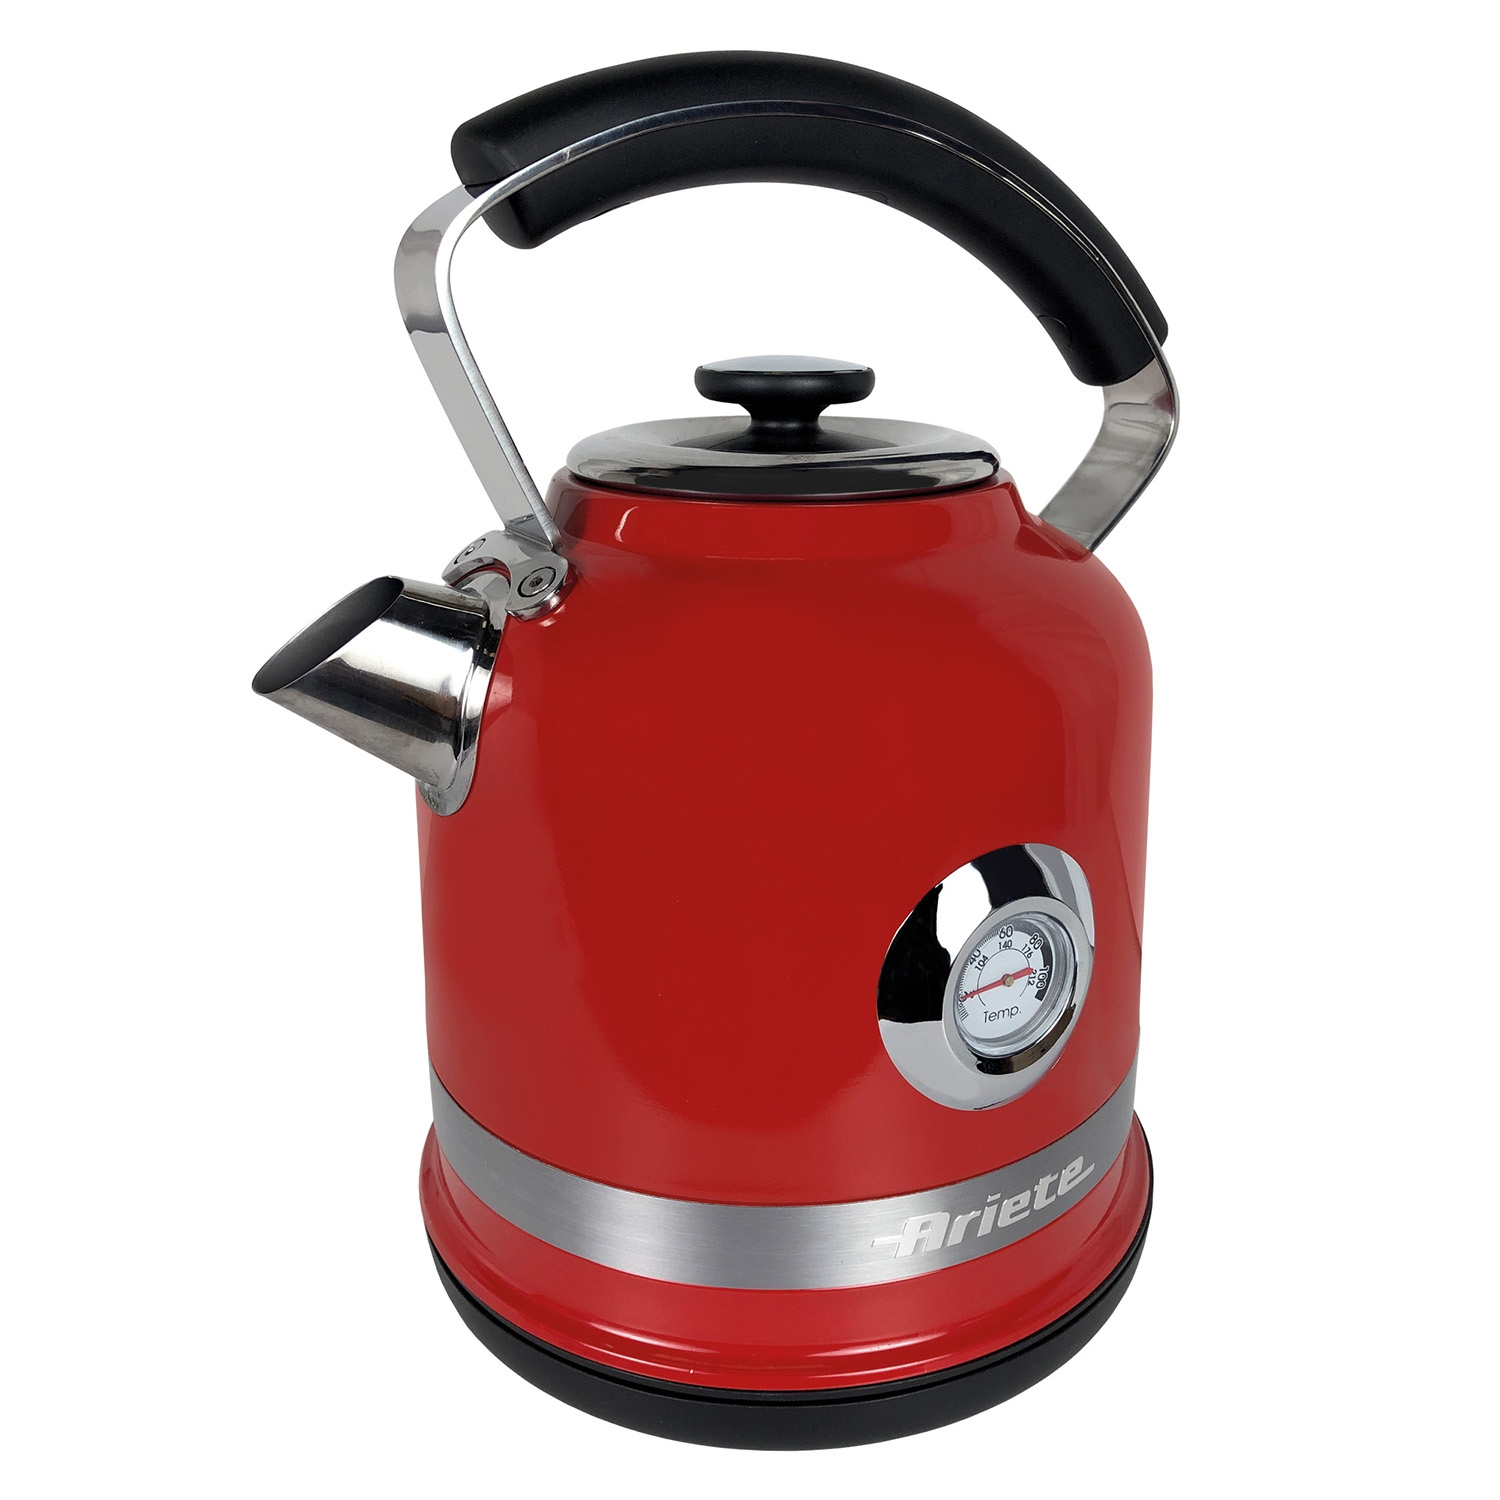 Image of Ariete Moderna Kettle, Red